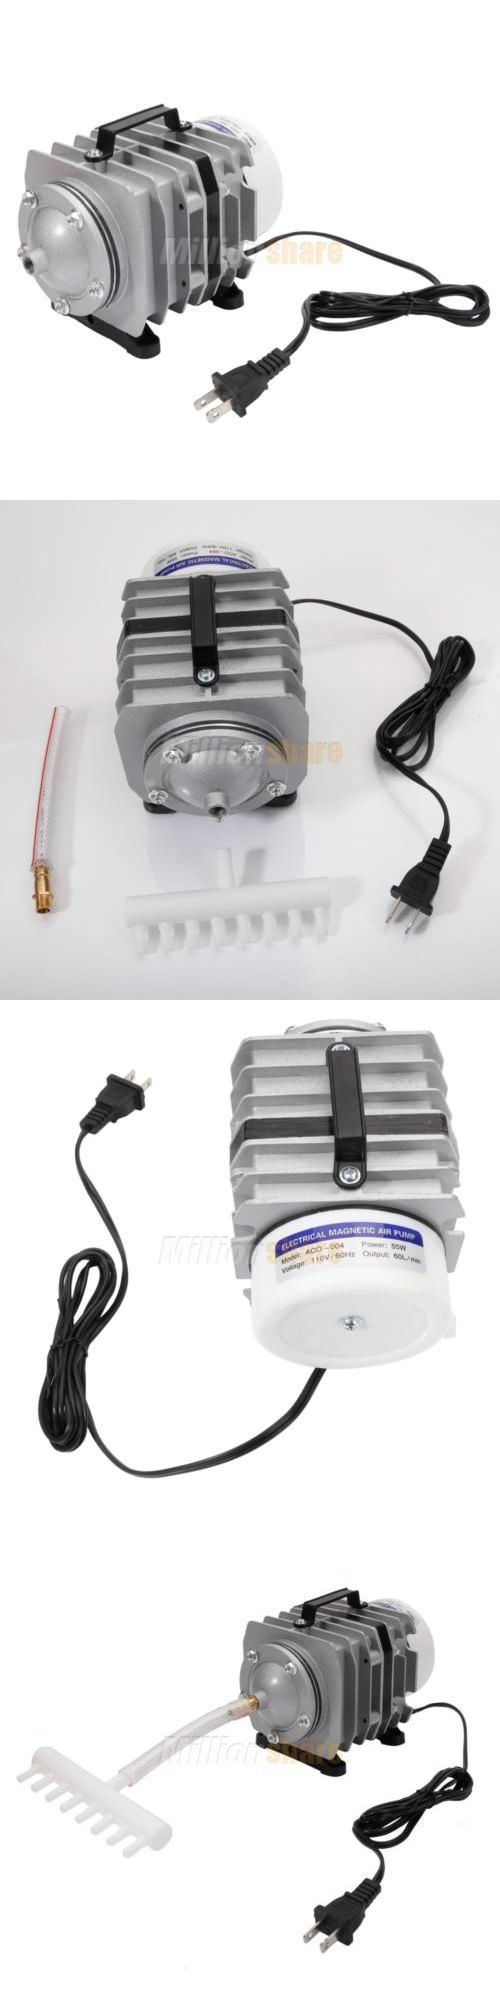 Pumps Air 100351 O2 Commercial Pump 951gph 8 Hole Electric Pond Electrical Wiring Magnetic Aquarium Hydroponic Buy It Now Only 2999 On Ebay